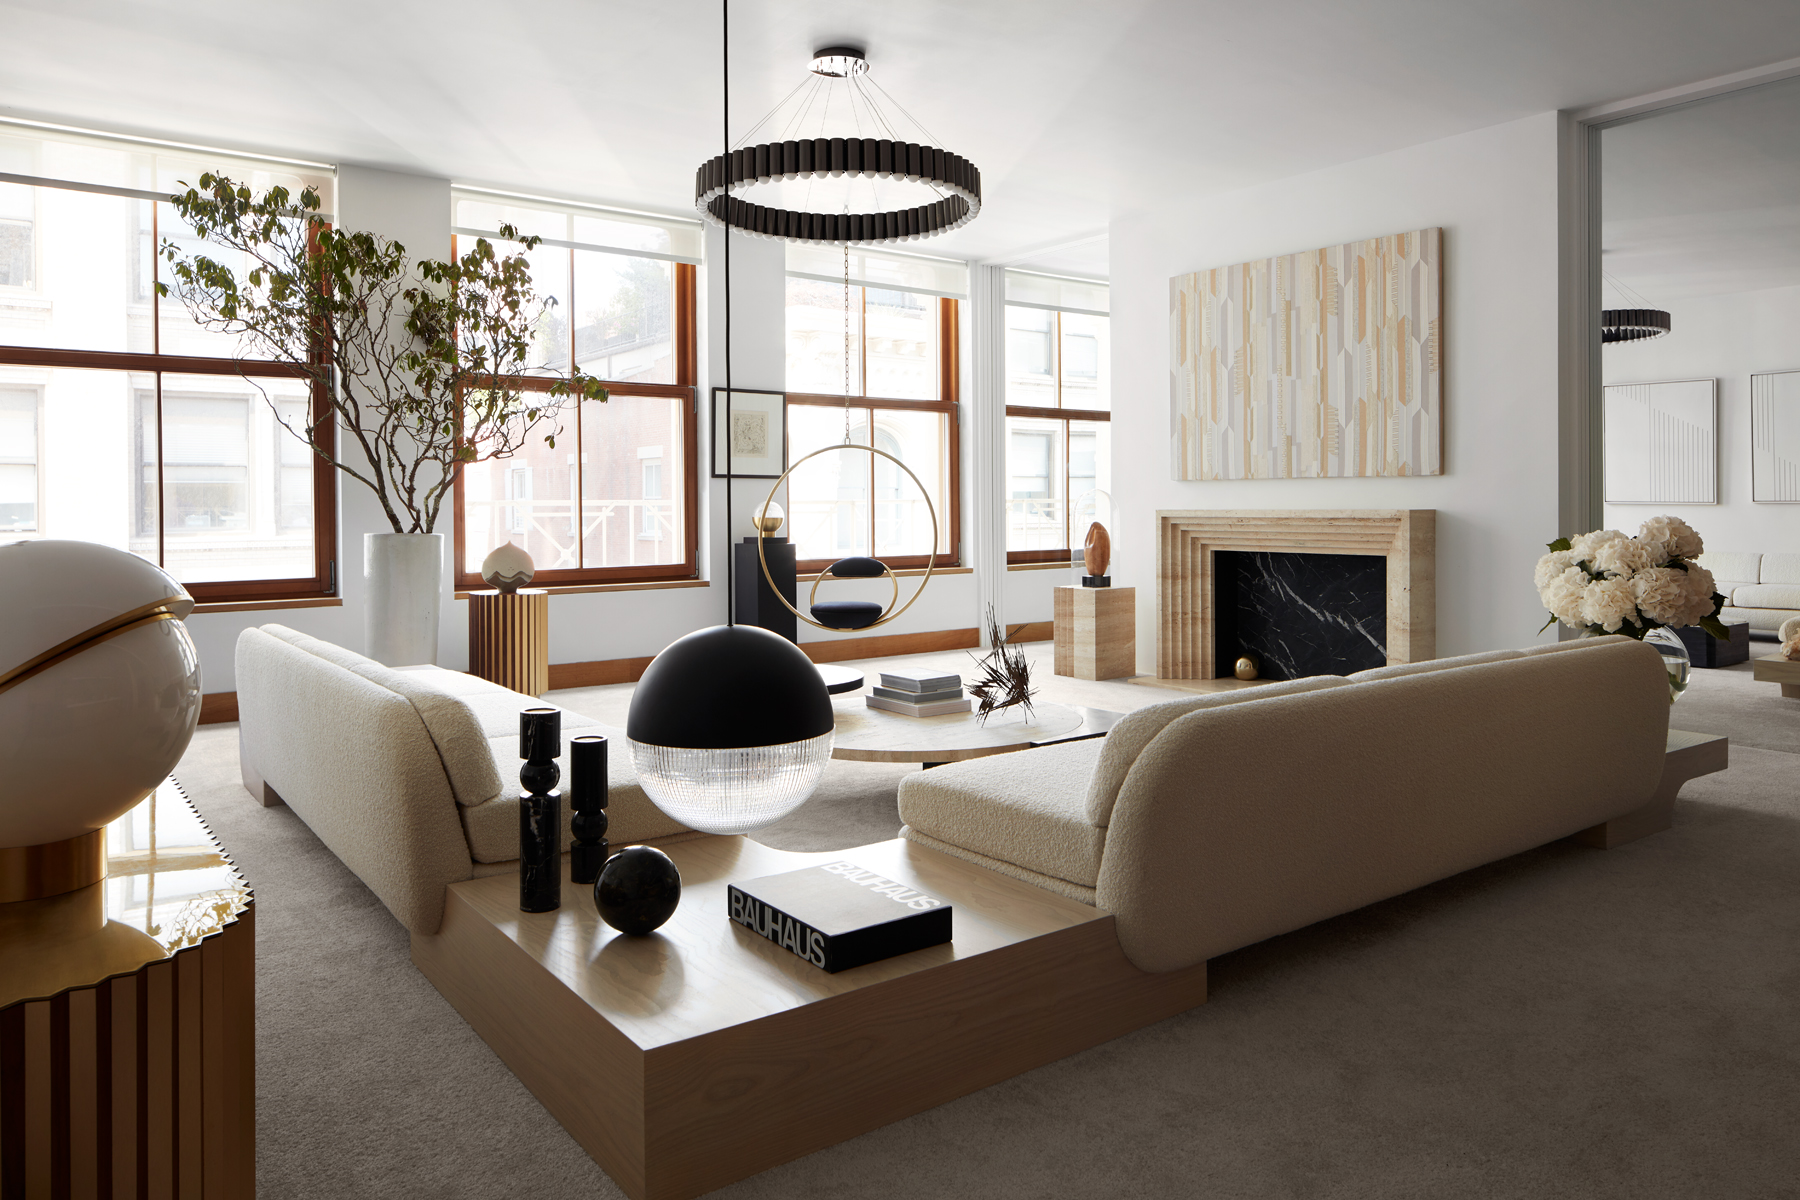 NYC Penthouse by Lee Broom